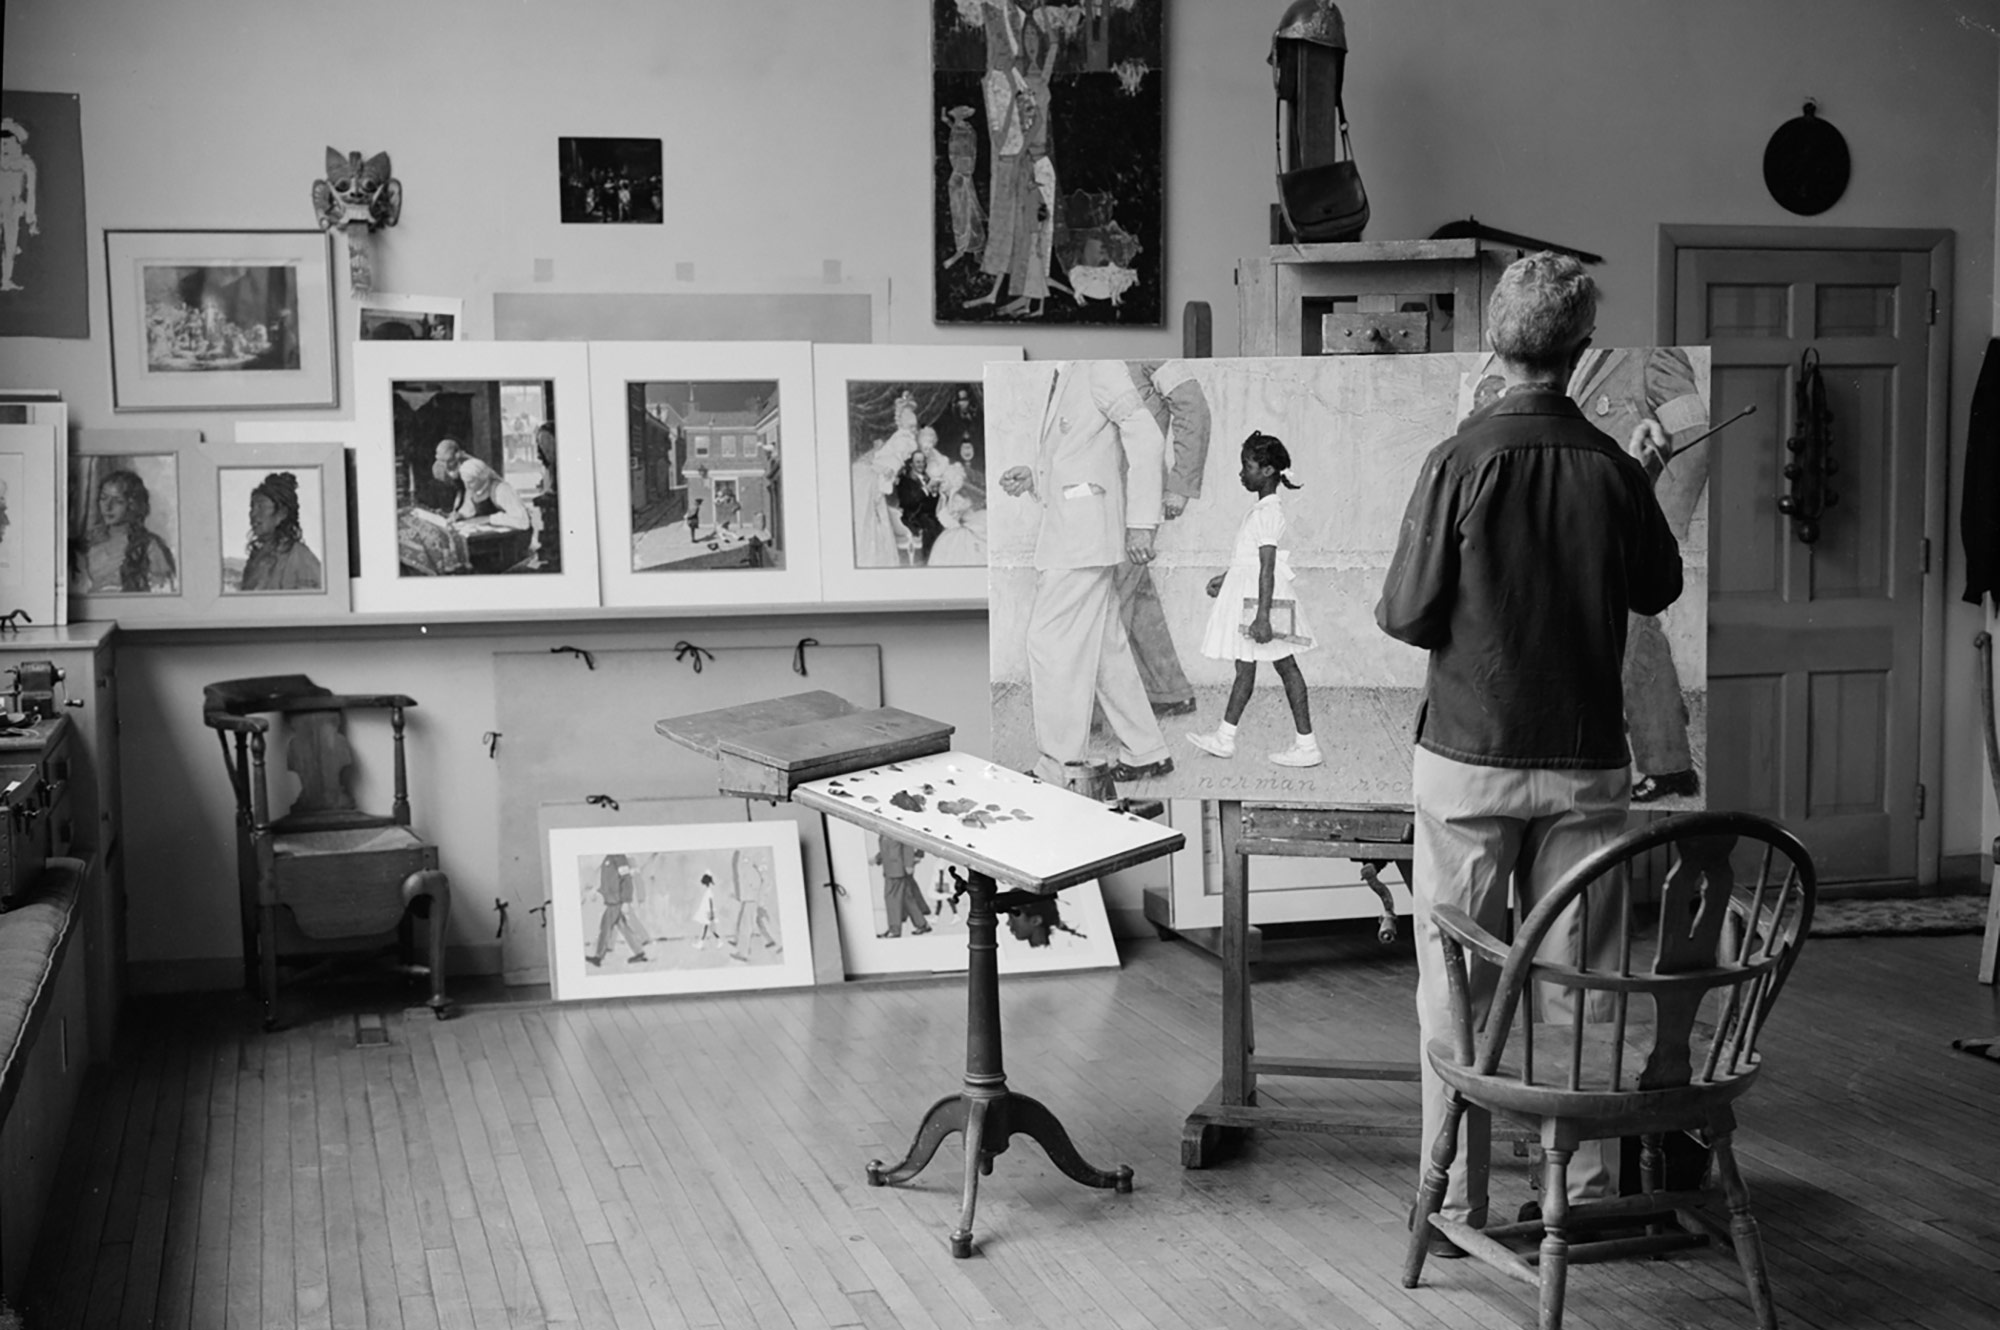 Norman Rockwell in his studio painting The Problem We All Live With